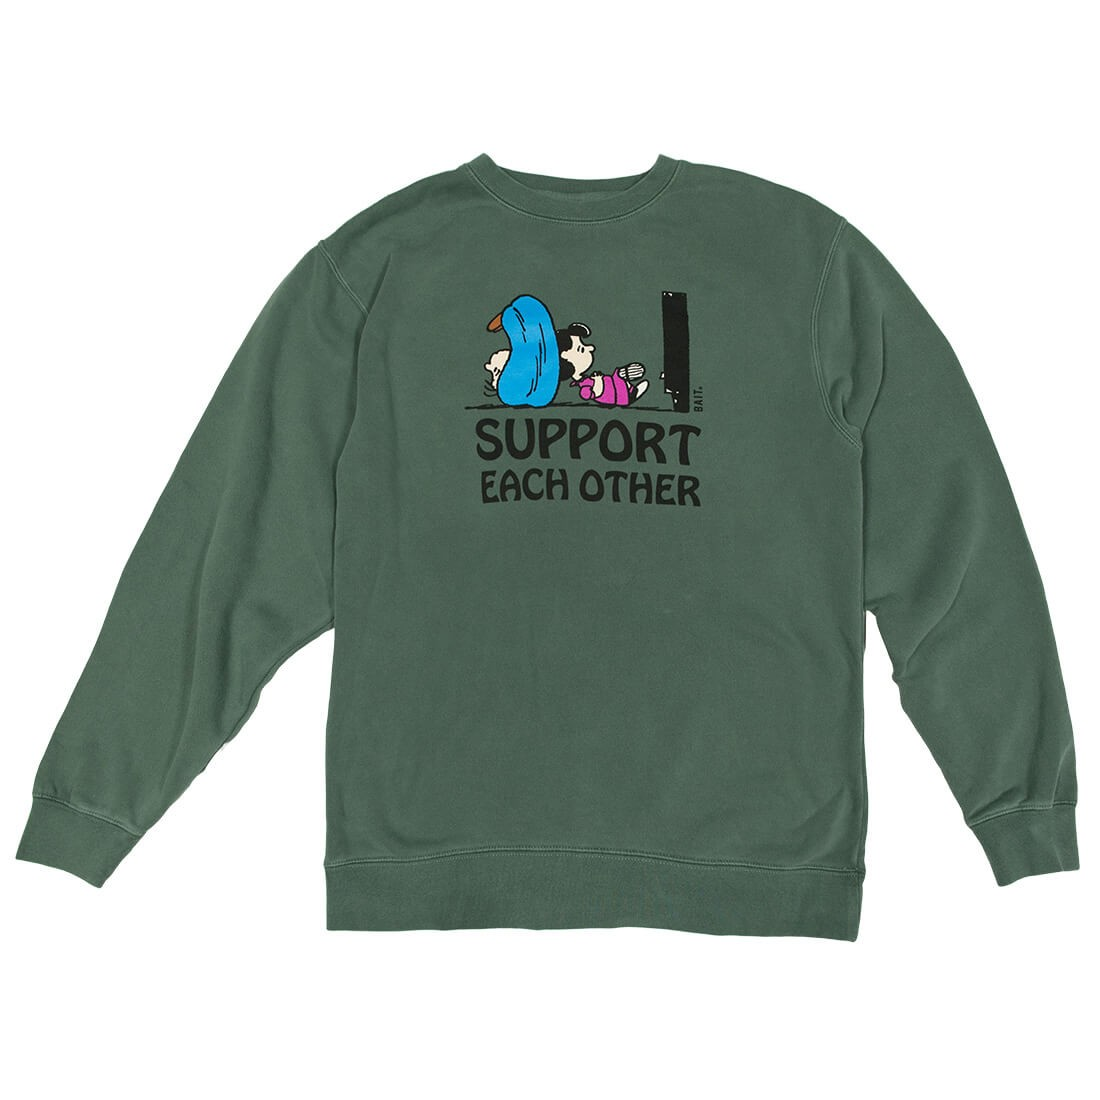 BAIT x Snoopy Men Support Each Other Crewneck Sweater (green)